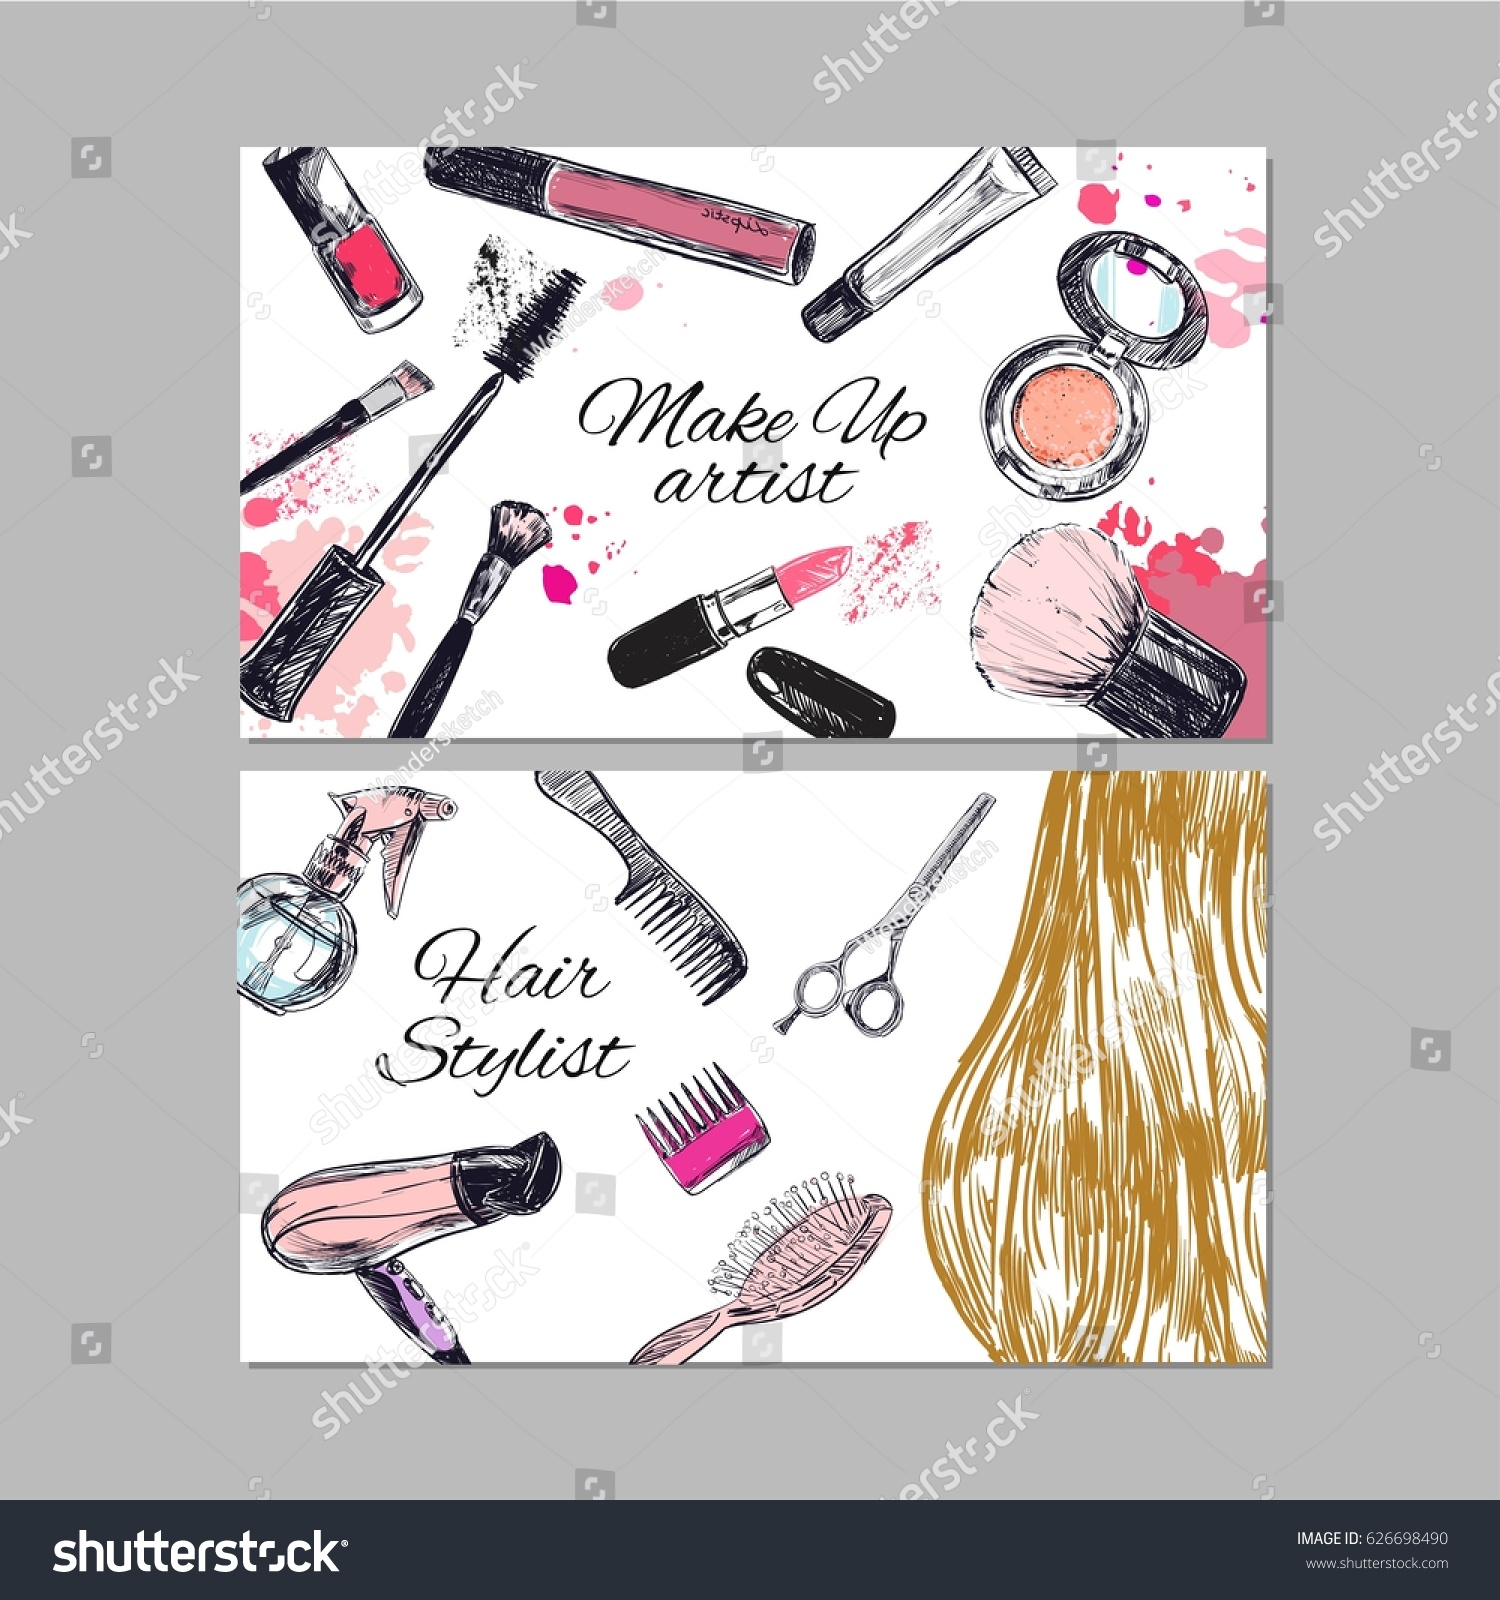 Make artist hair stylist business cards stock vector royalty free make up artist and hair stylist business cards beauty and fashion vector hand drawn friedricerecipe Images